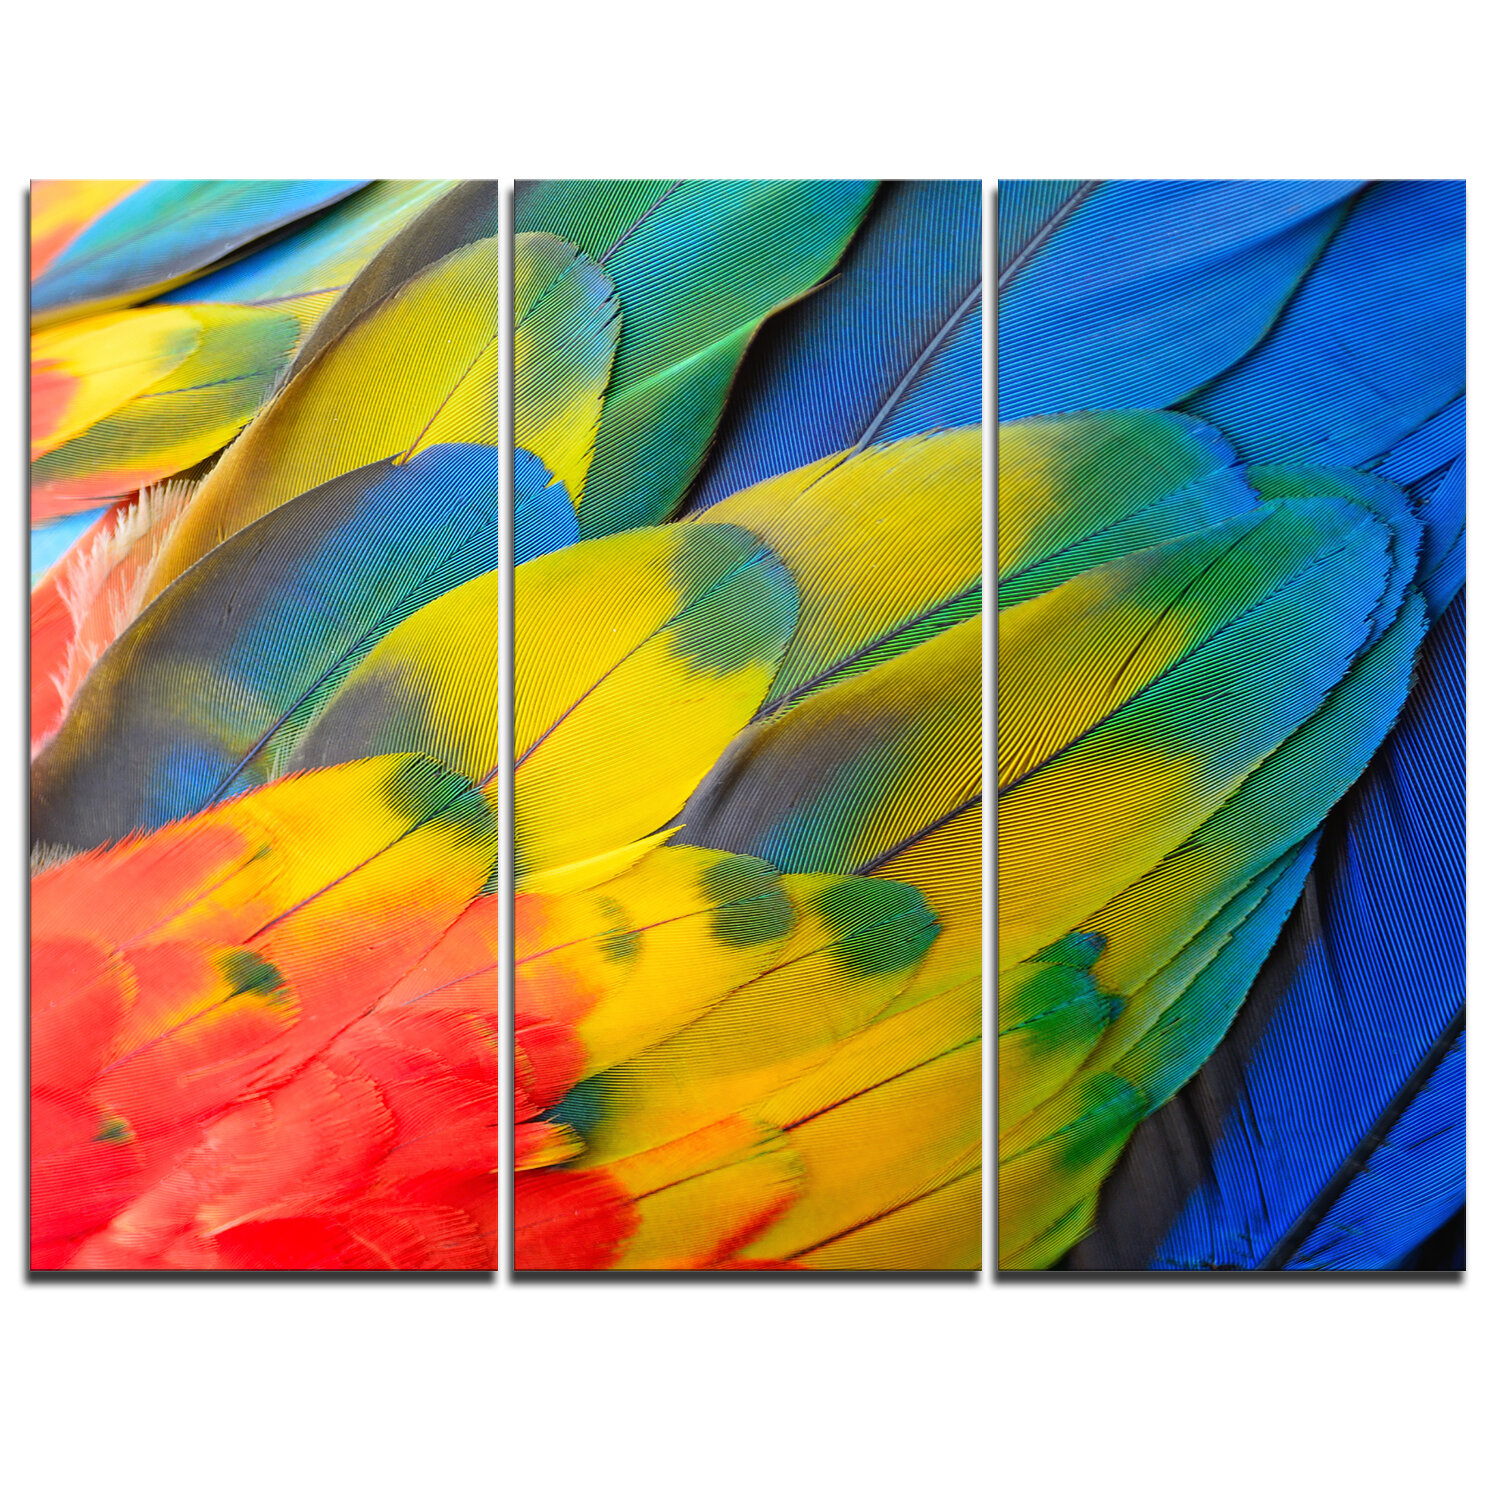 DesignArt Scarlet Macaw Feathers - 3 Piece Graphic Art on Wrapped ...